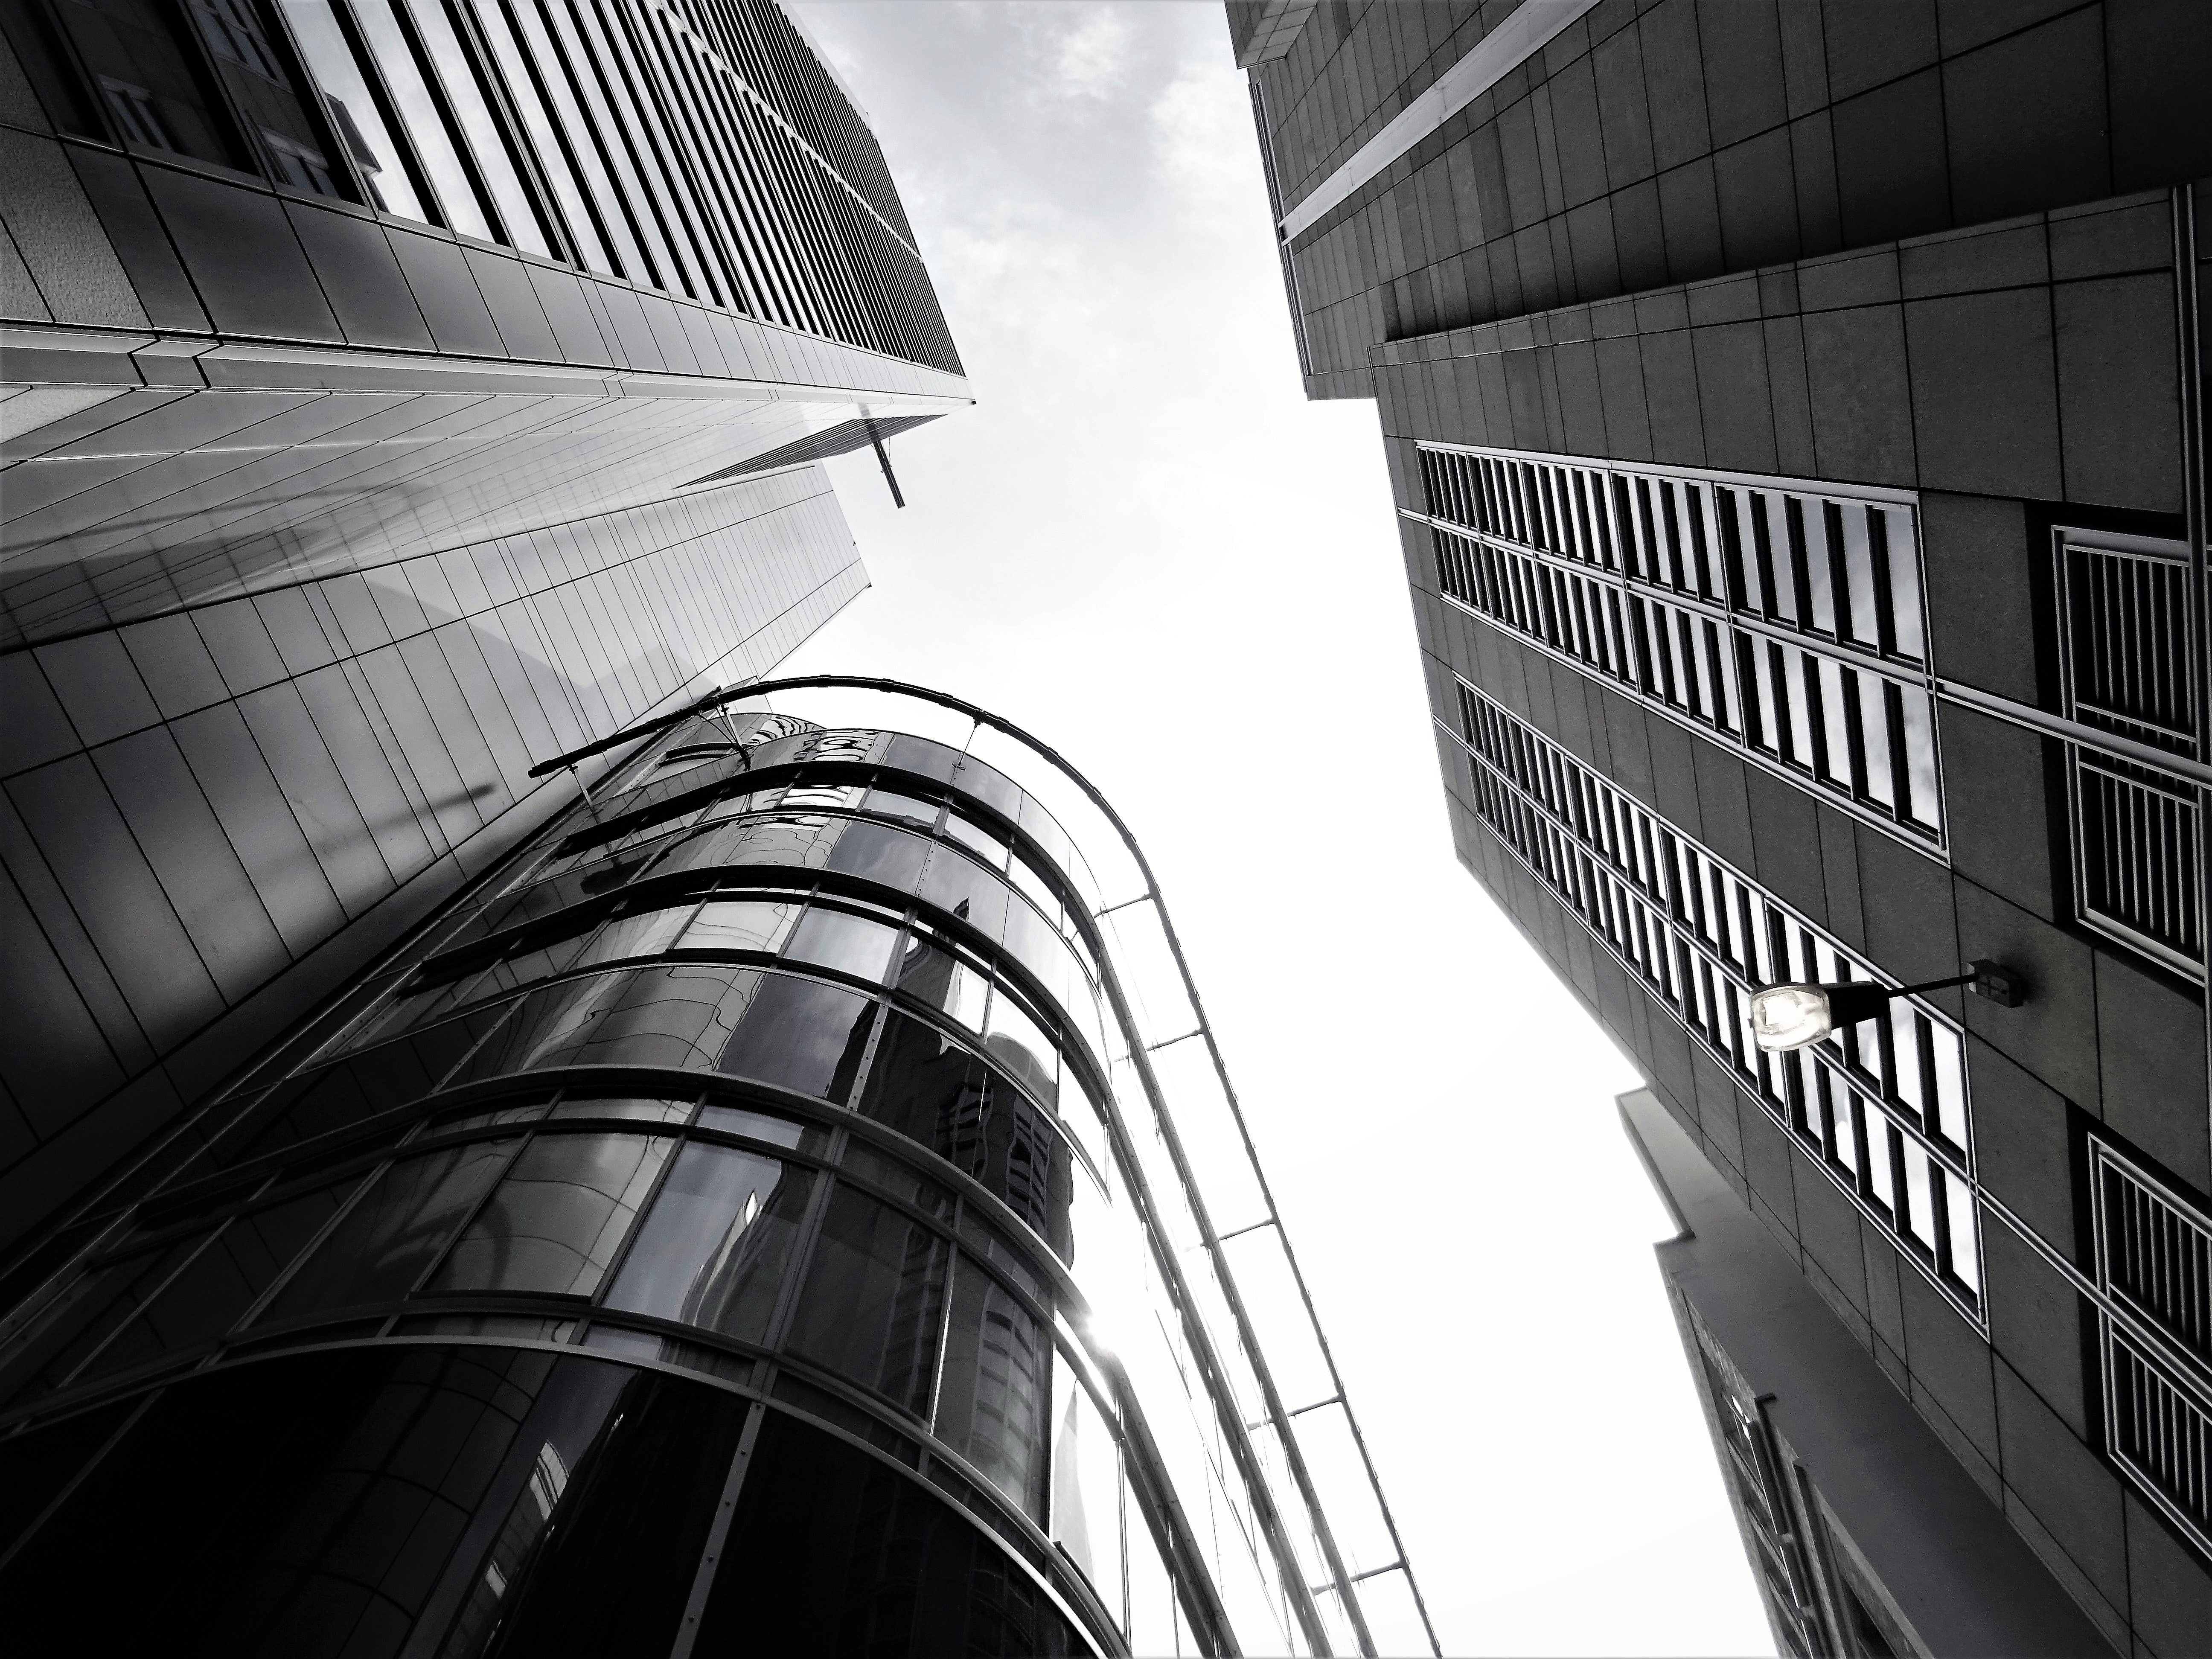 Grayscale Photograph of Buildings, Office, Windows, Urban, Tower, HQ Photo